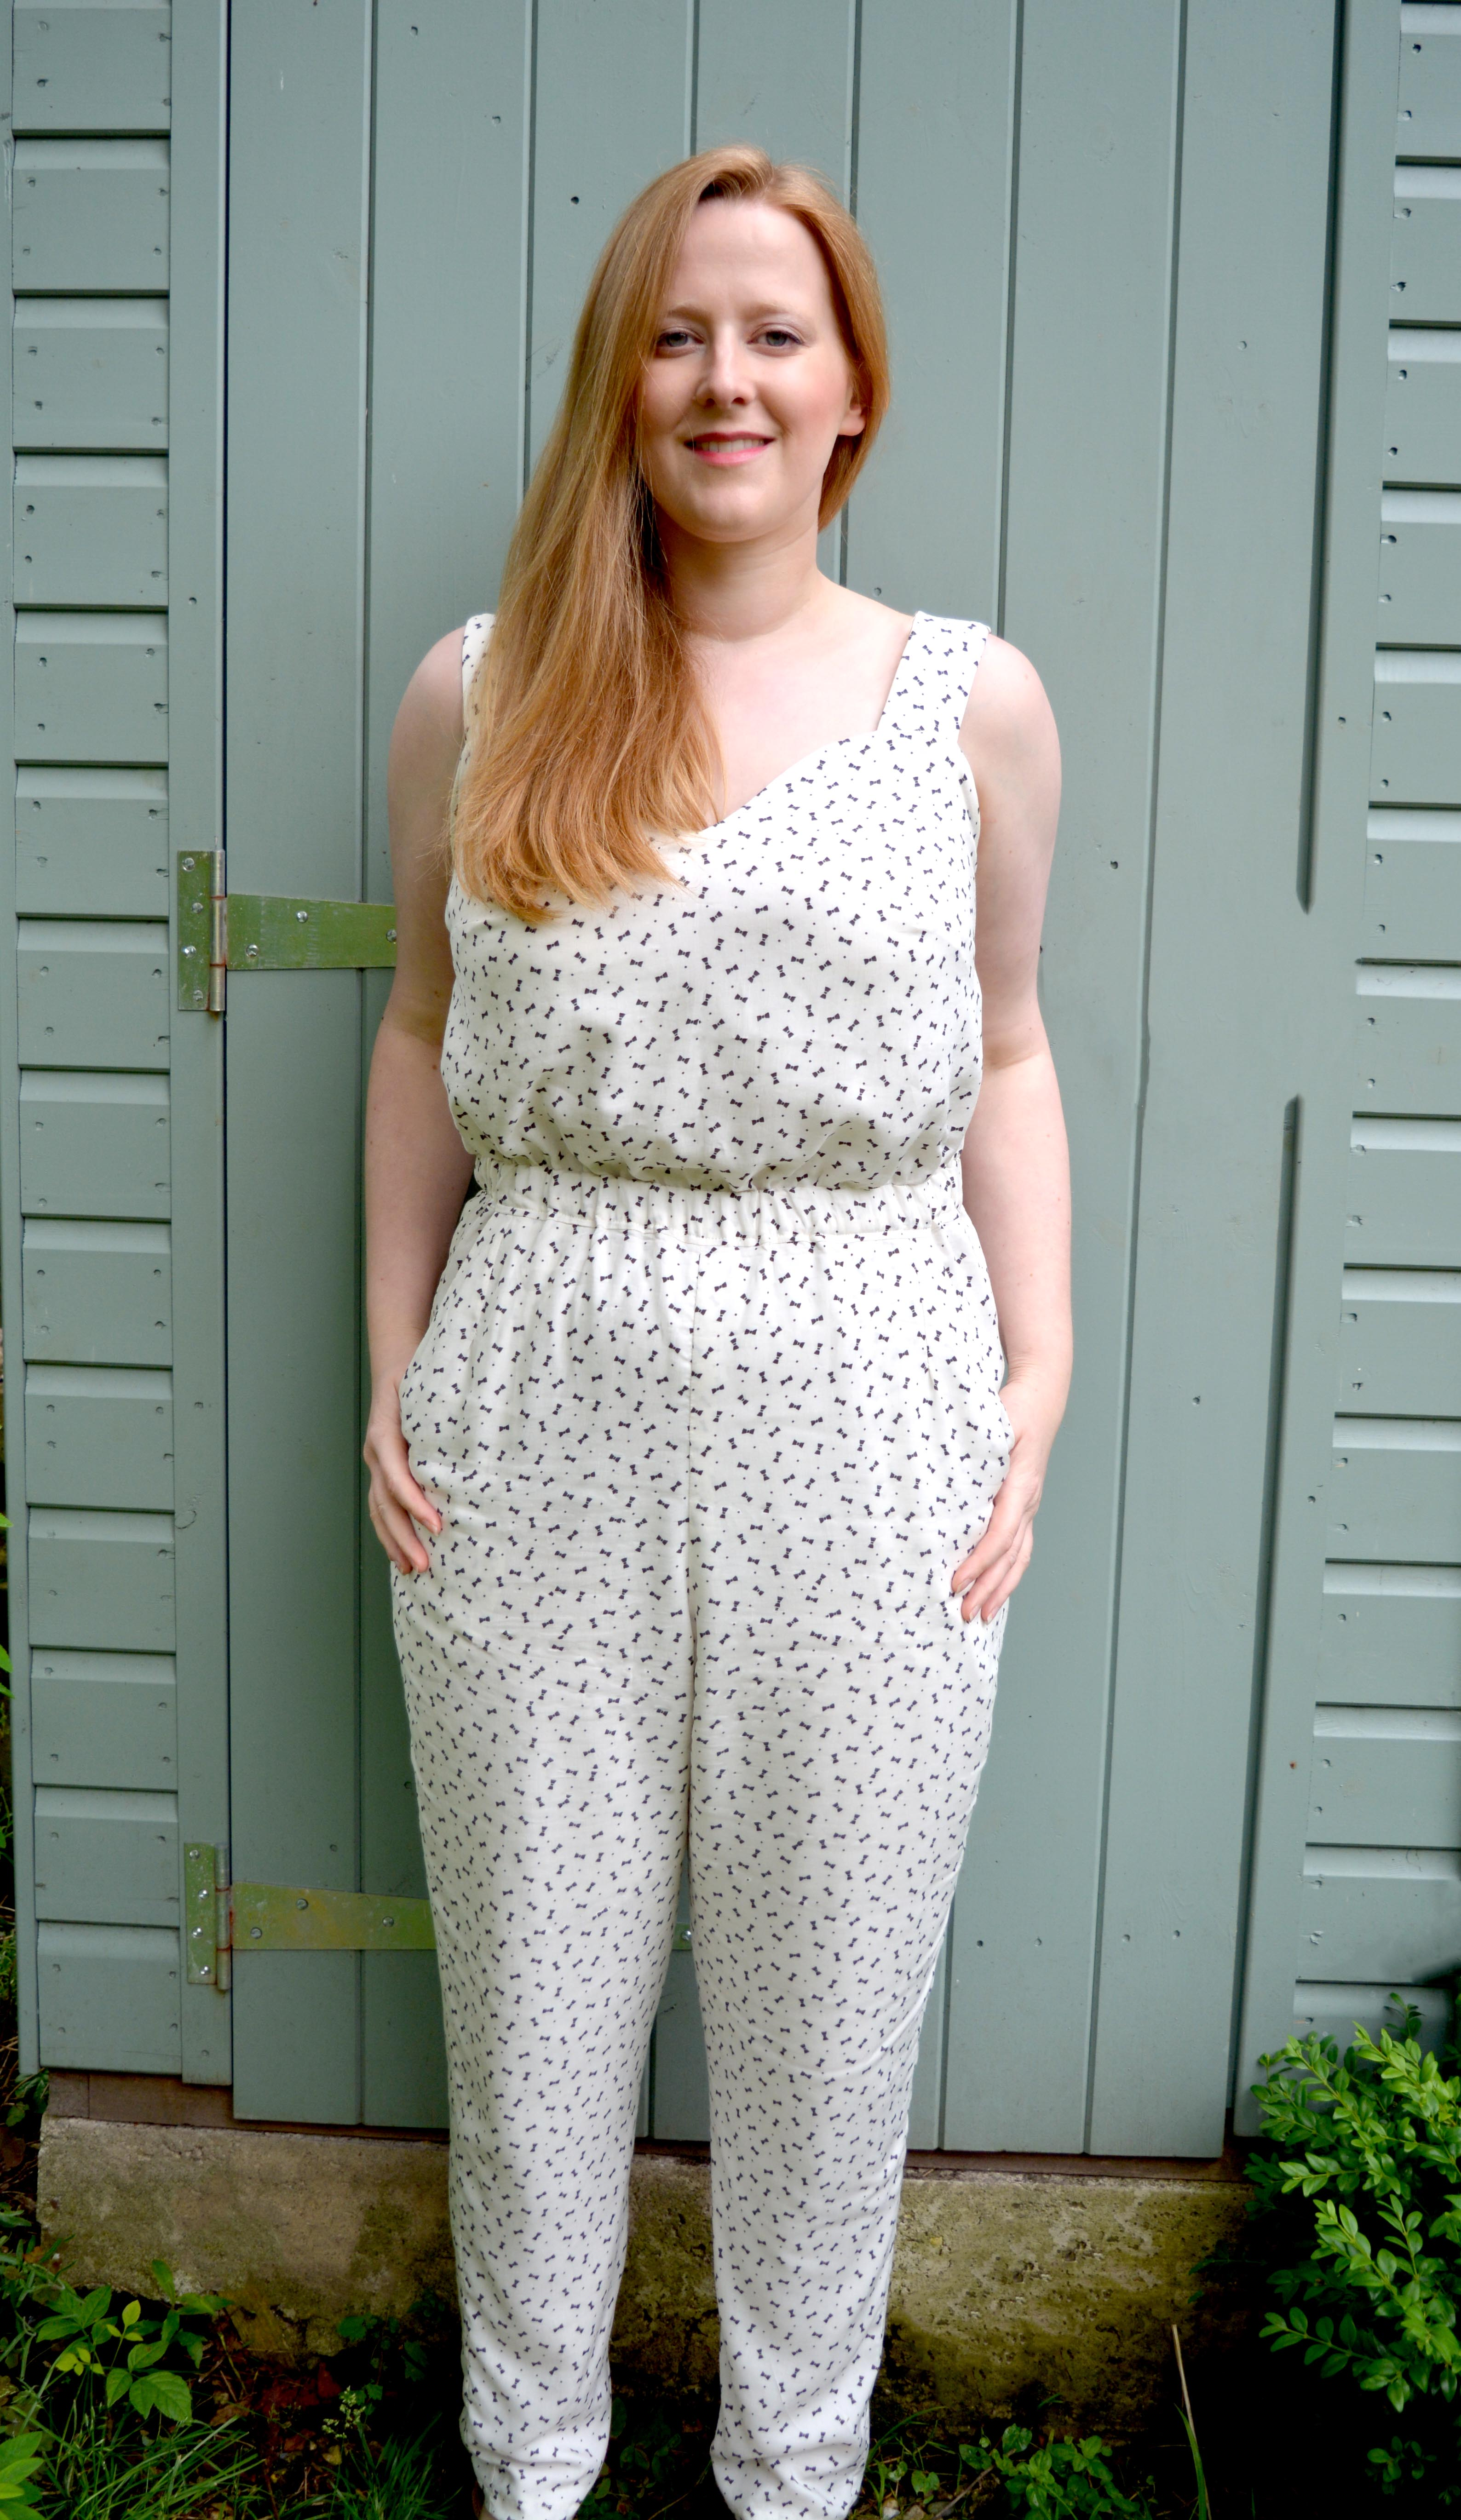 97d0fdb78c09 Marigold jumpsuit and trousers - The Foldline